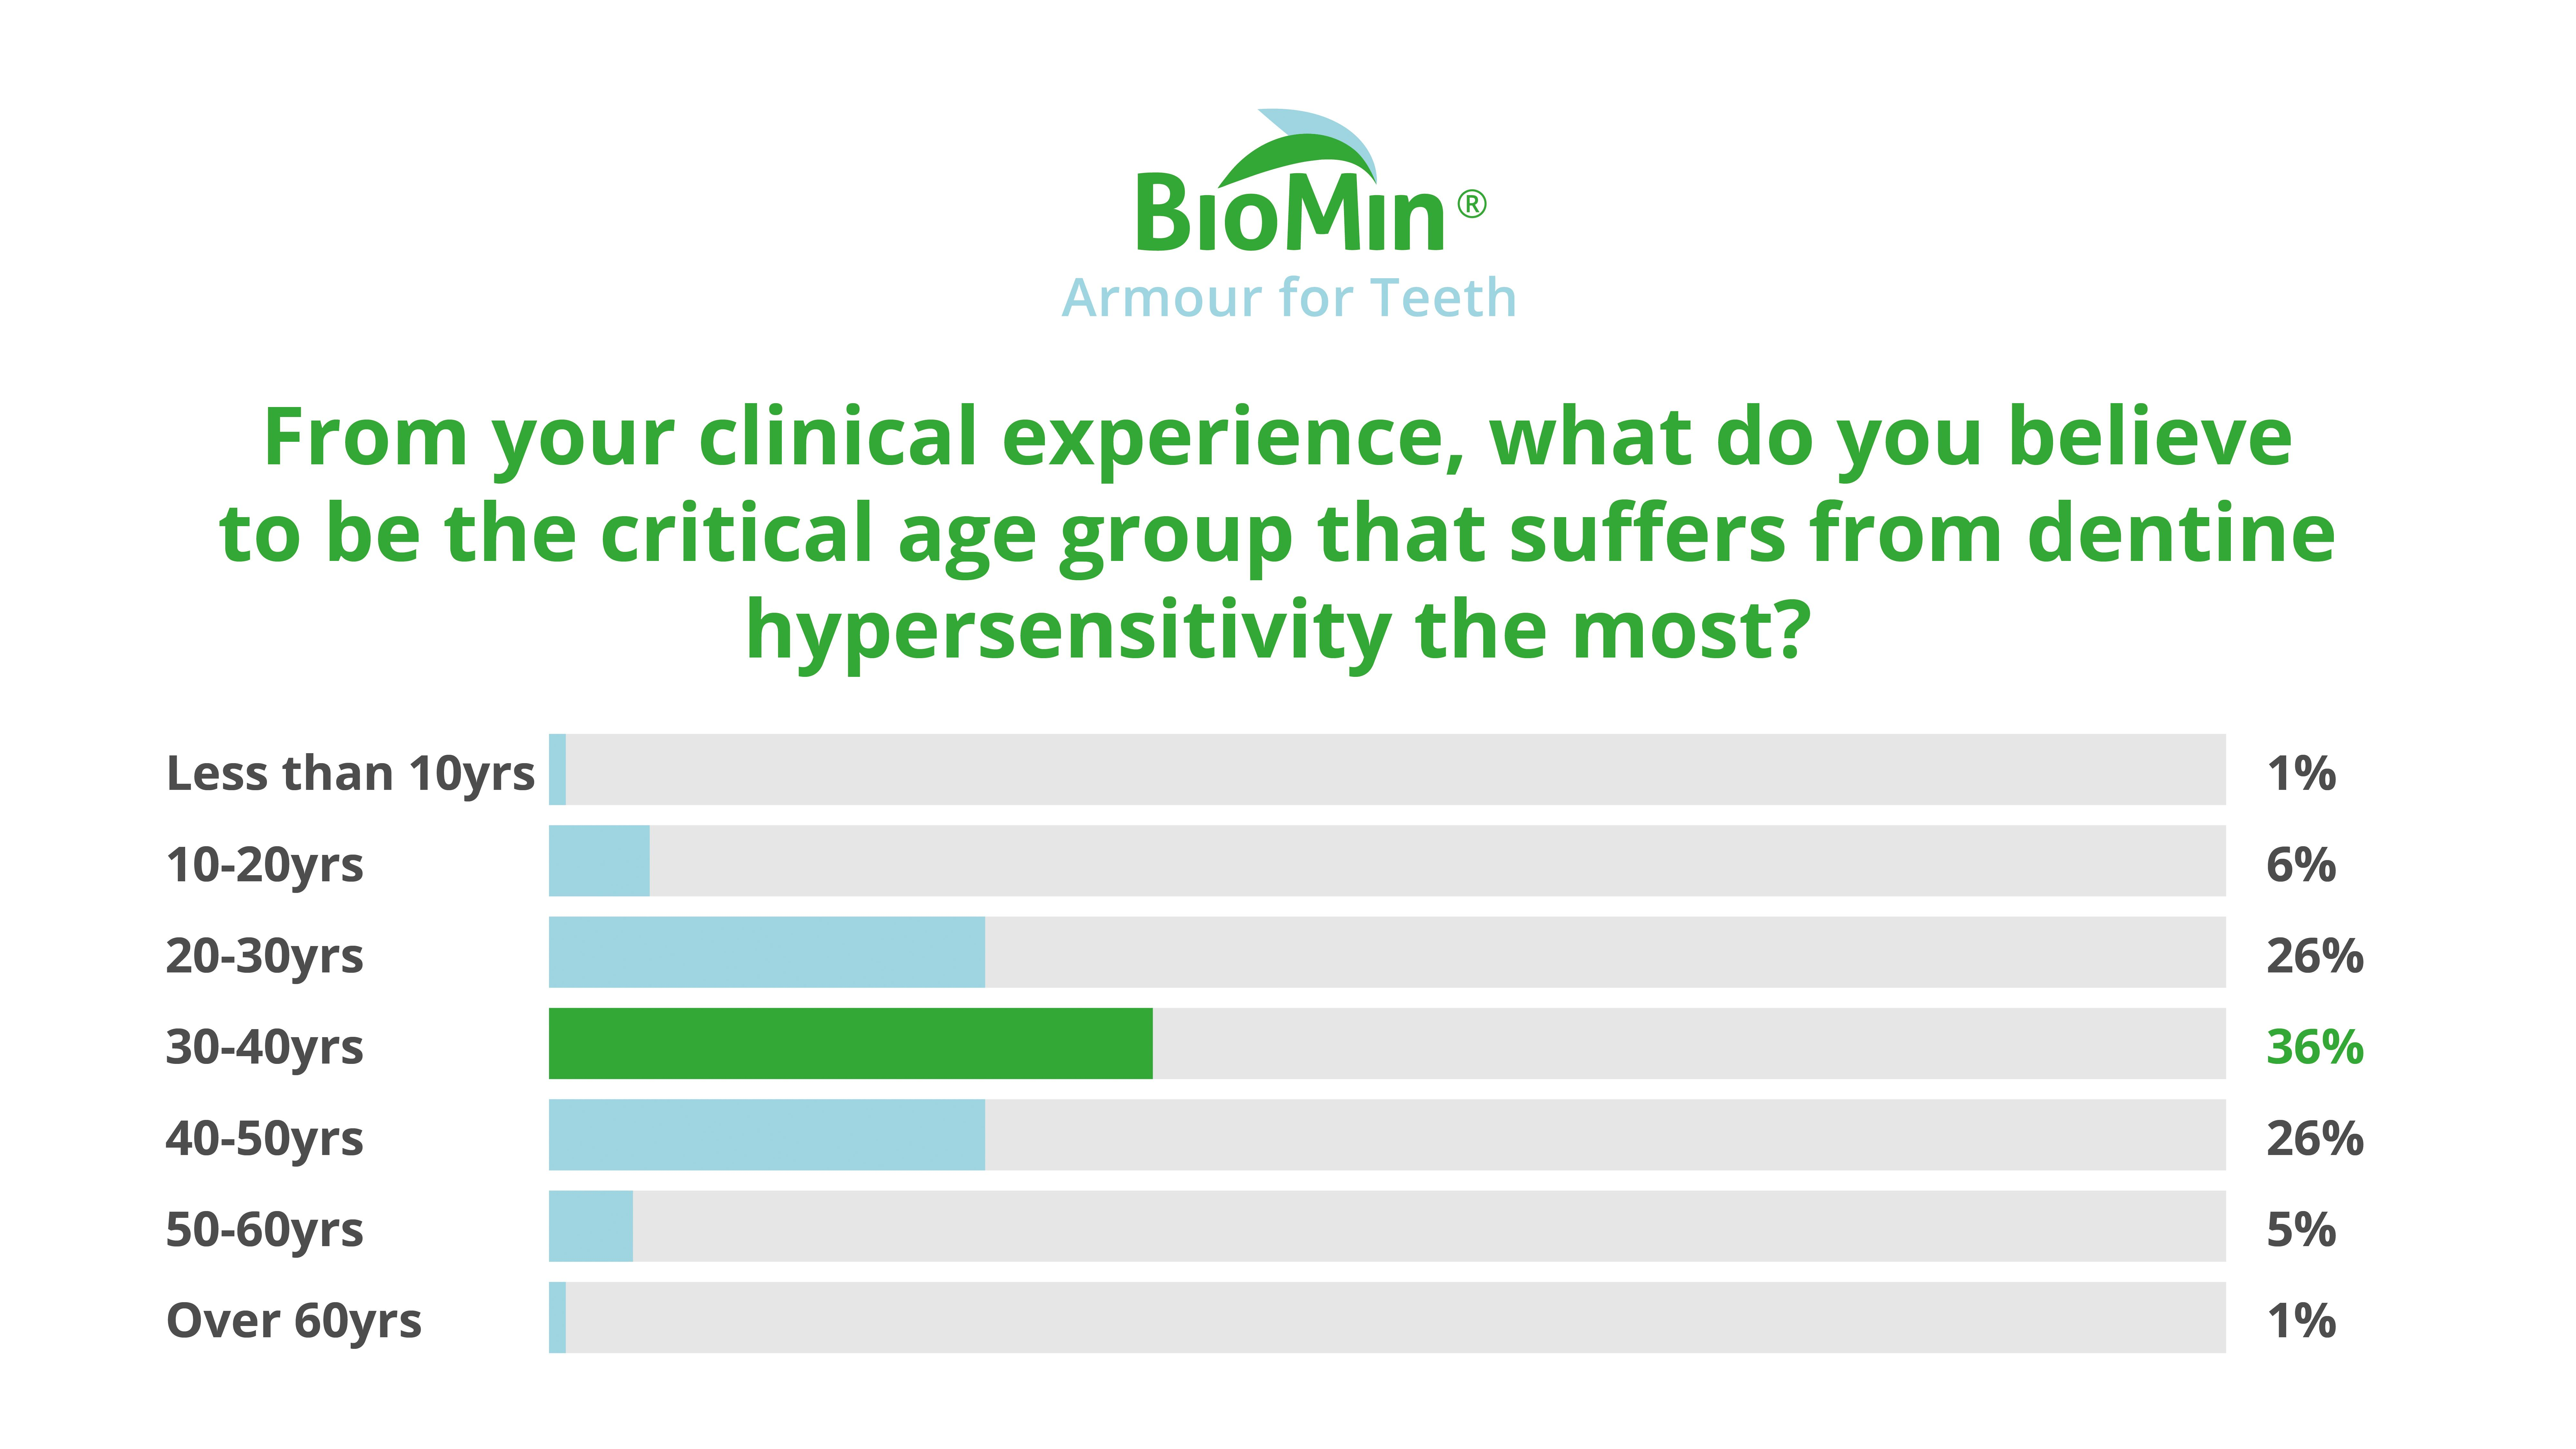 Dentine Hypersensitivity - What do you believe to be the critical age group that suffers from dentine hypersensitivity the most?